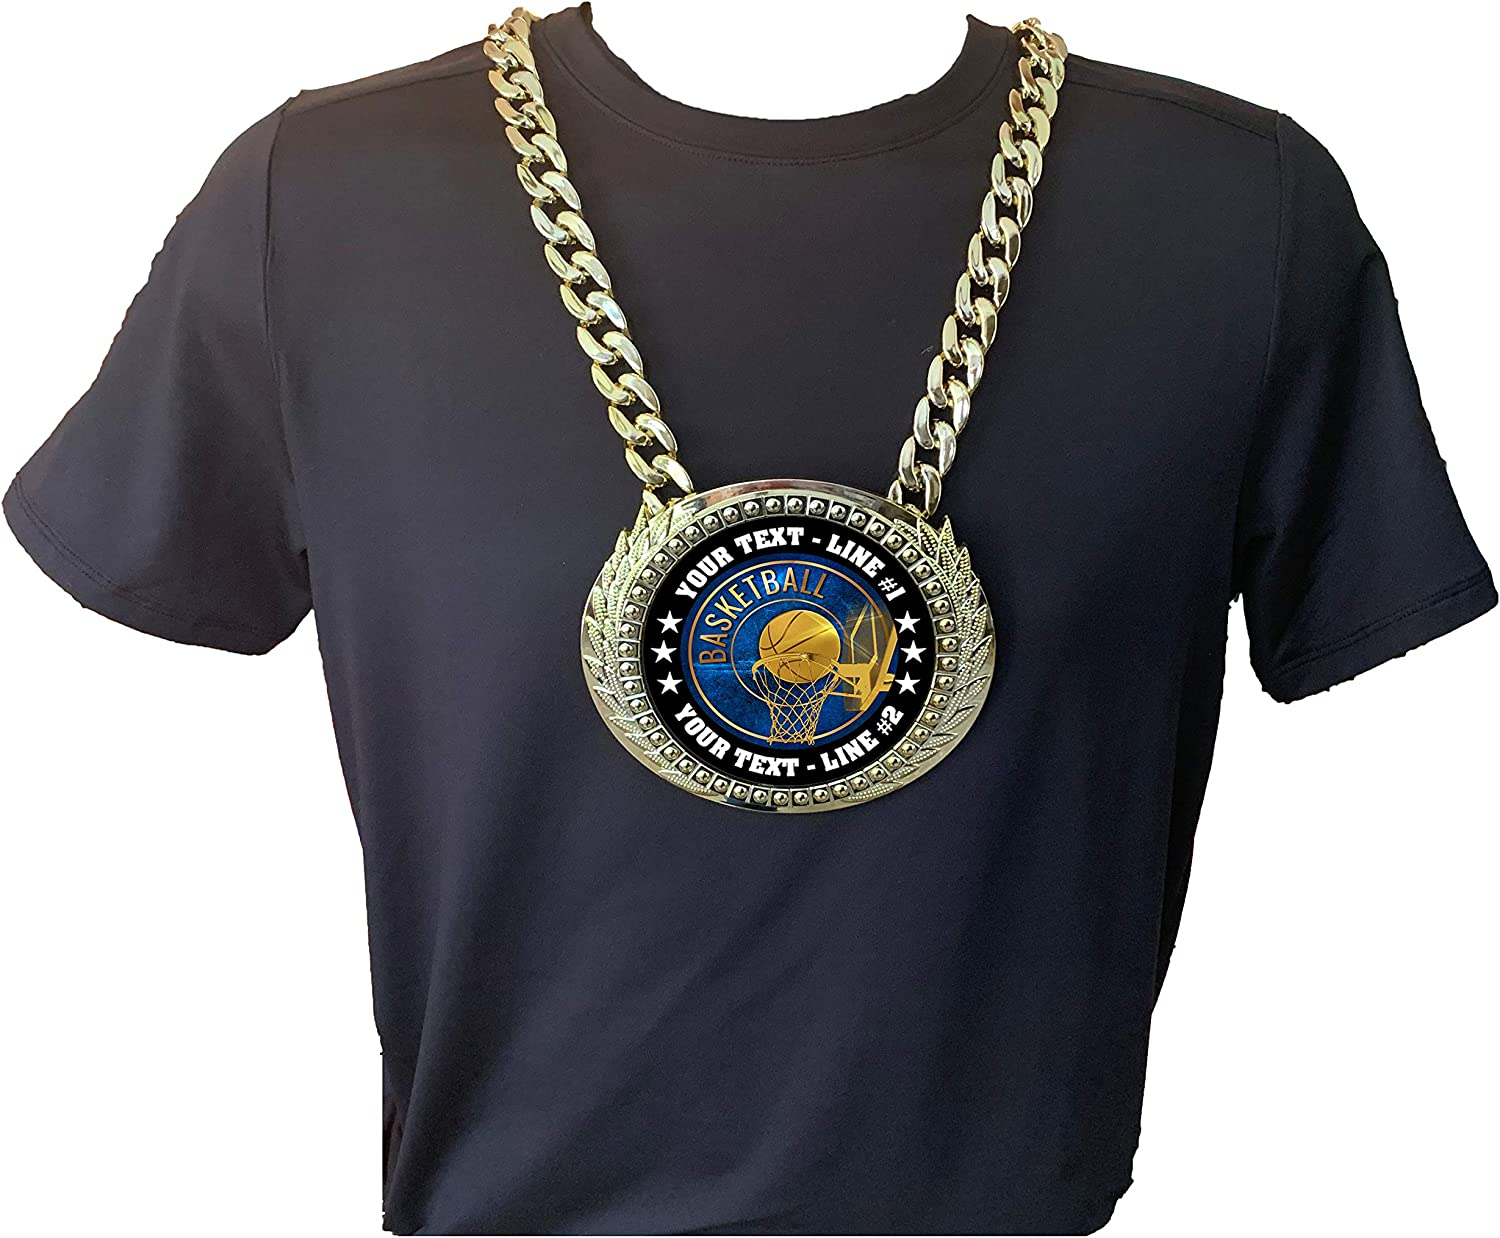 EG12 Express Medals Custom Basketball Champ Chain Trophy with 2 Lines of Personalized Text on a Large Rigid Plastic Championship Award Medal and 34 Inch Long Gold Color Neck Chain